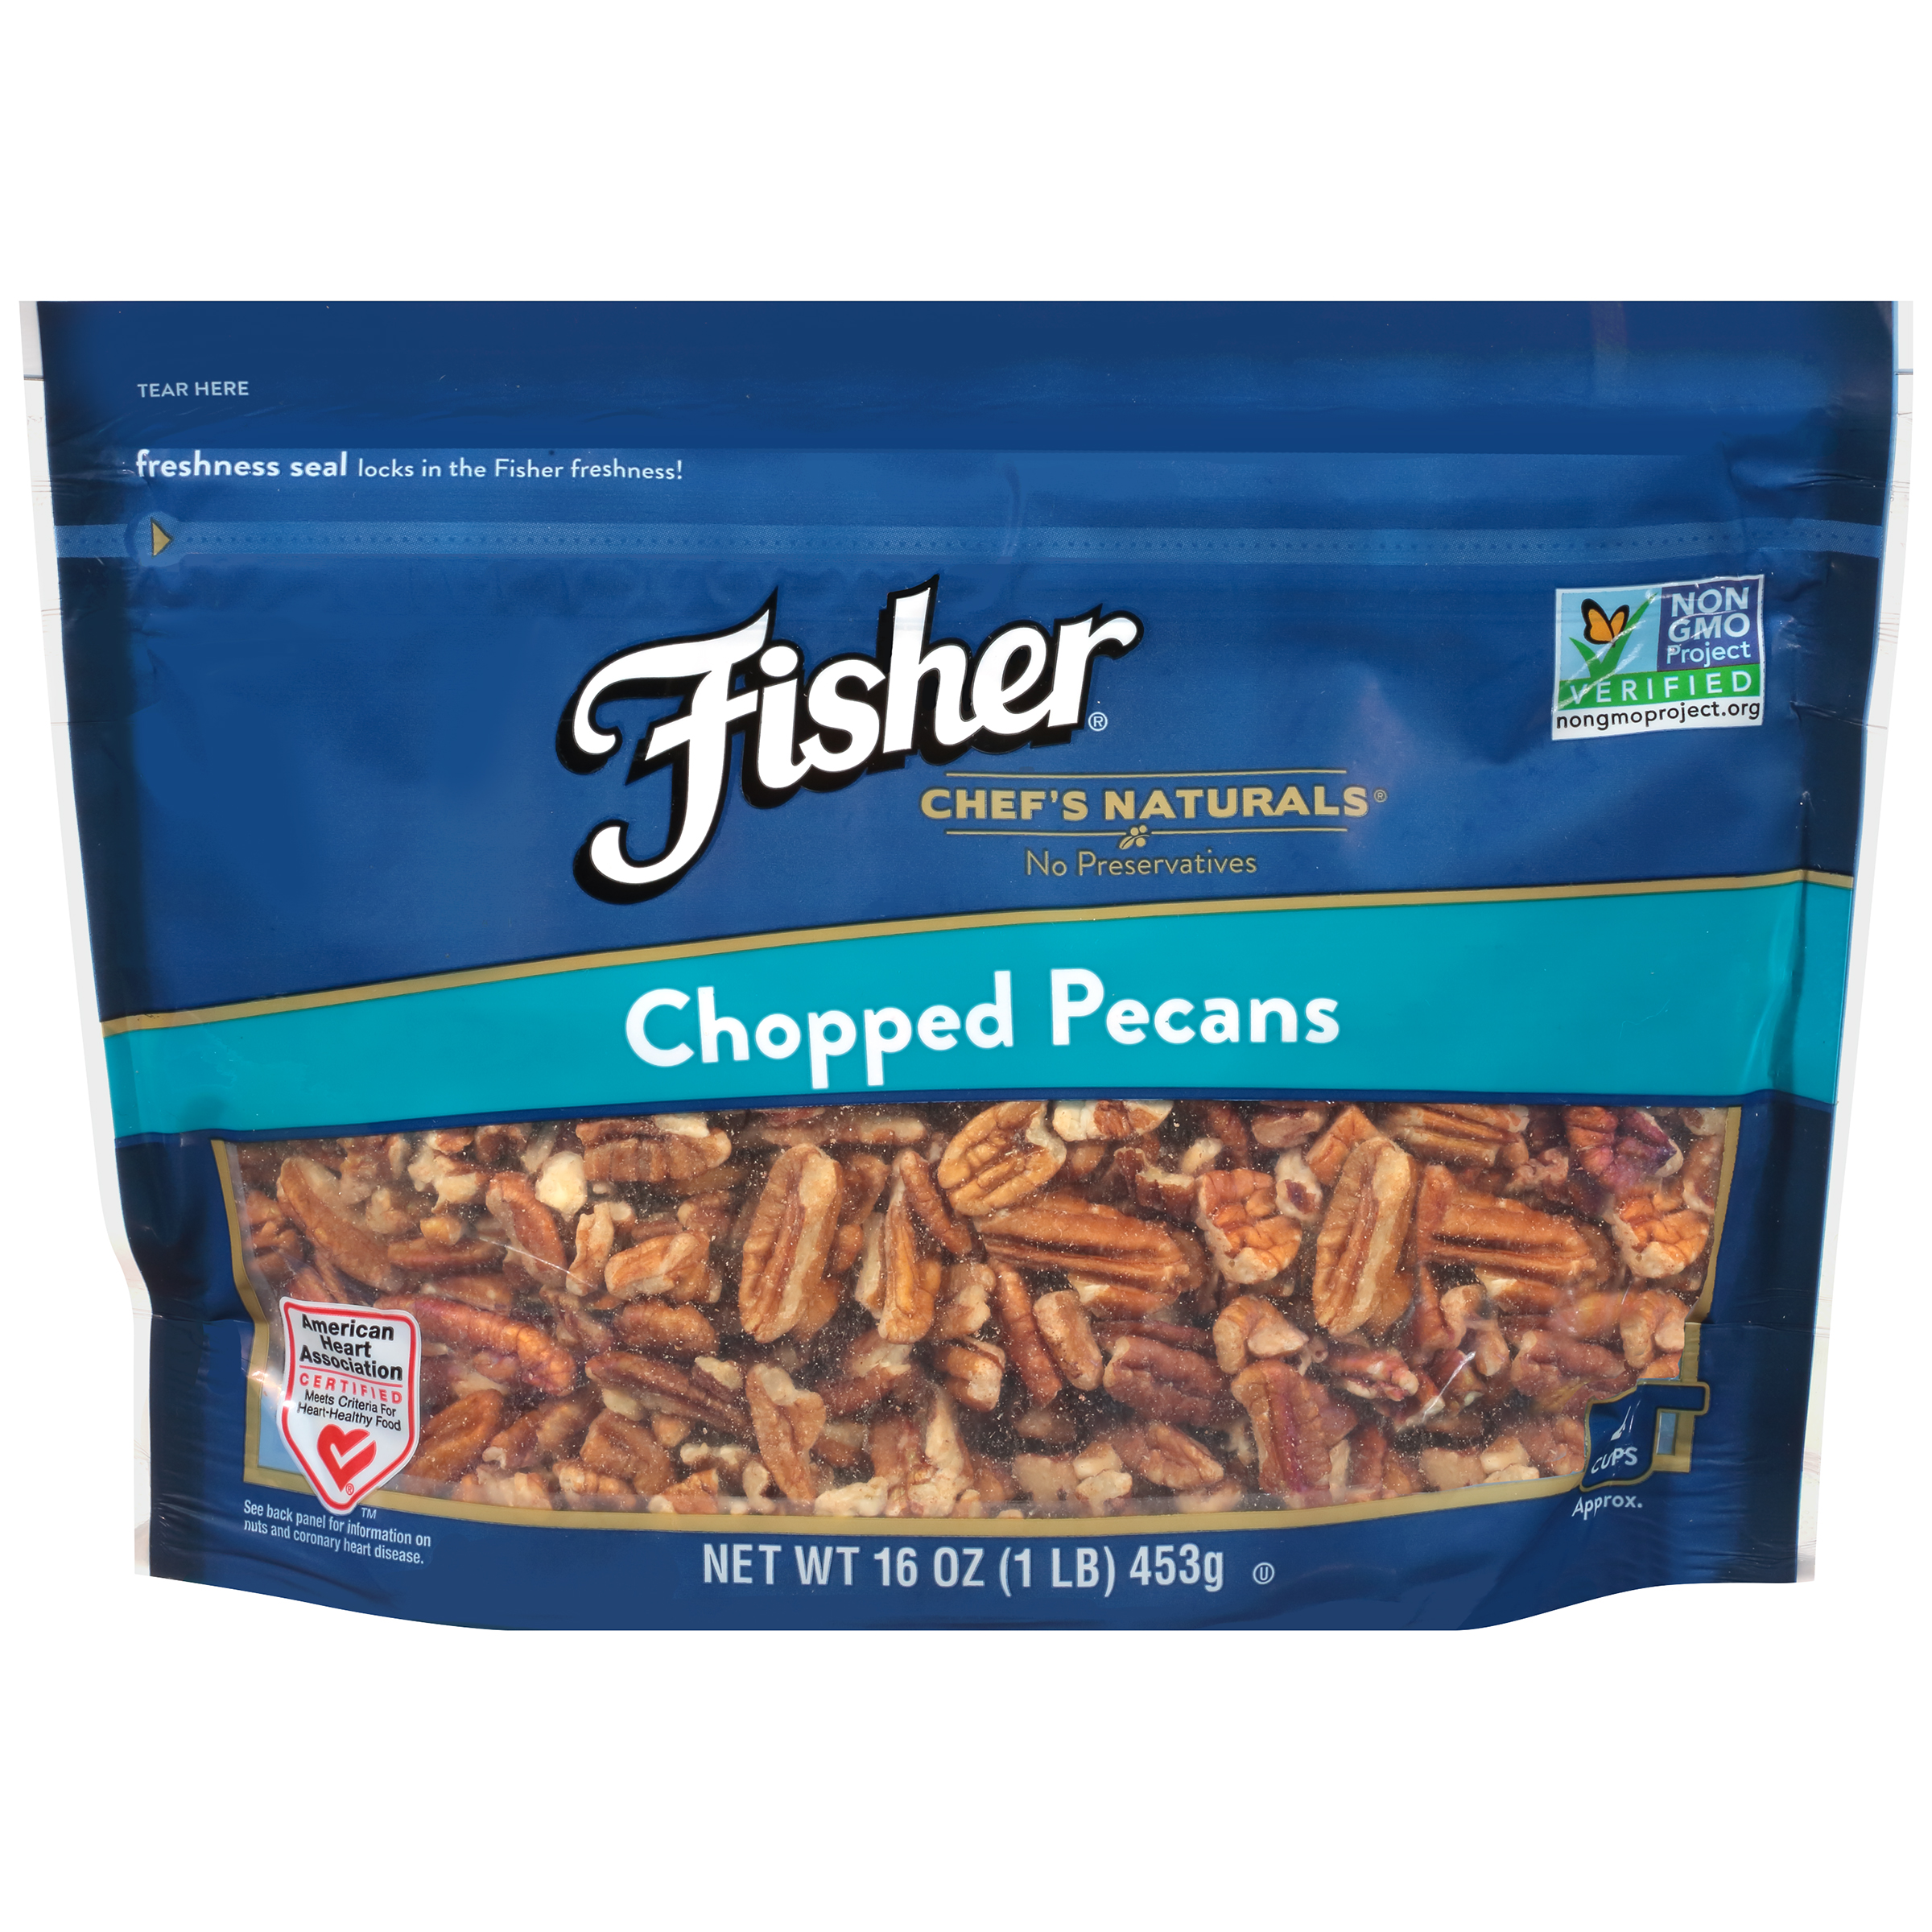 Fisher Chef's Naturals Chopped Pecans, 16 oz by John B. Sanfilippo & Son, Inc.